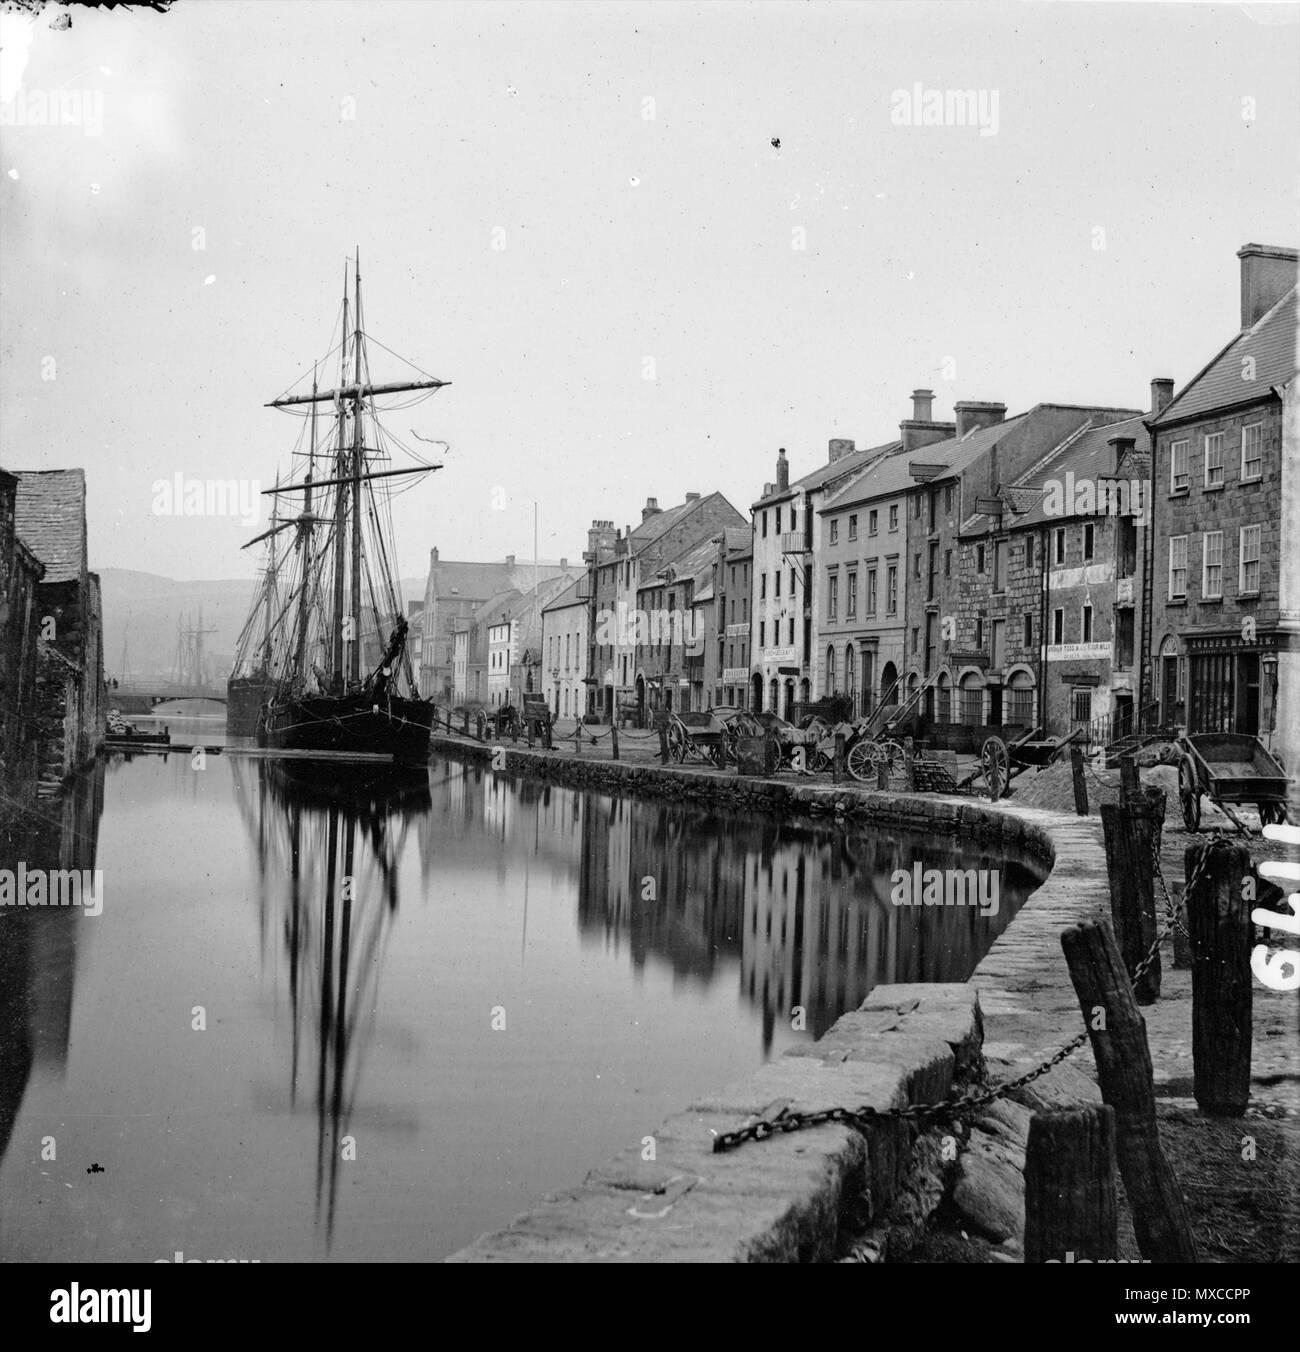 . English: Ships on the canal at Merchants Quay in Newry, alongside a nice brace of merchants' premises. Date: 1870s? (but definitely between 1860 and 1883) . 1870. Anonymous 413 Merchants Quay, Newry - Stock Image